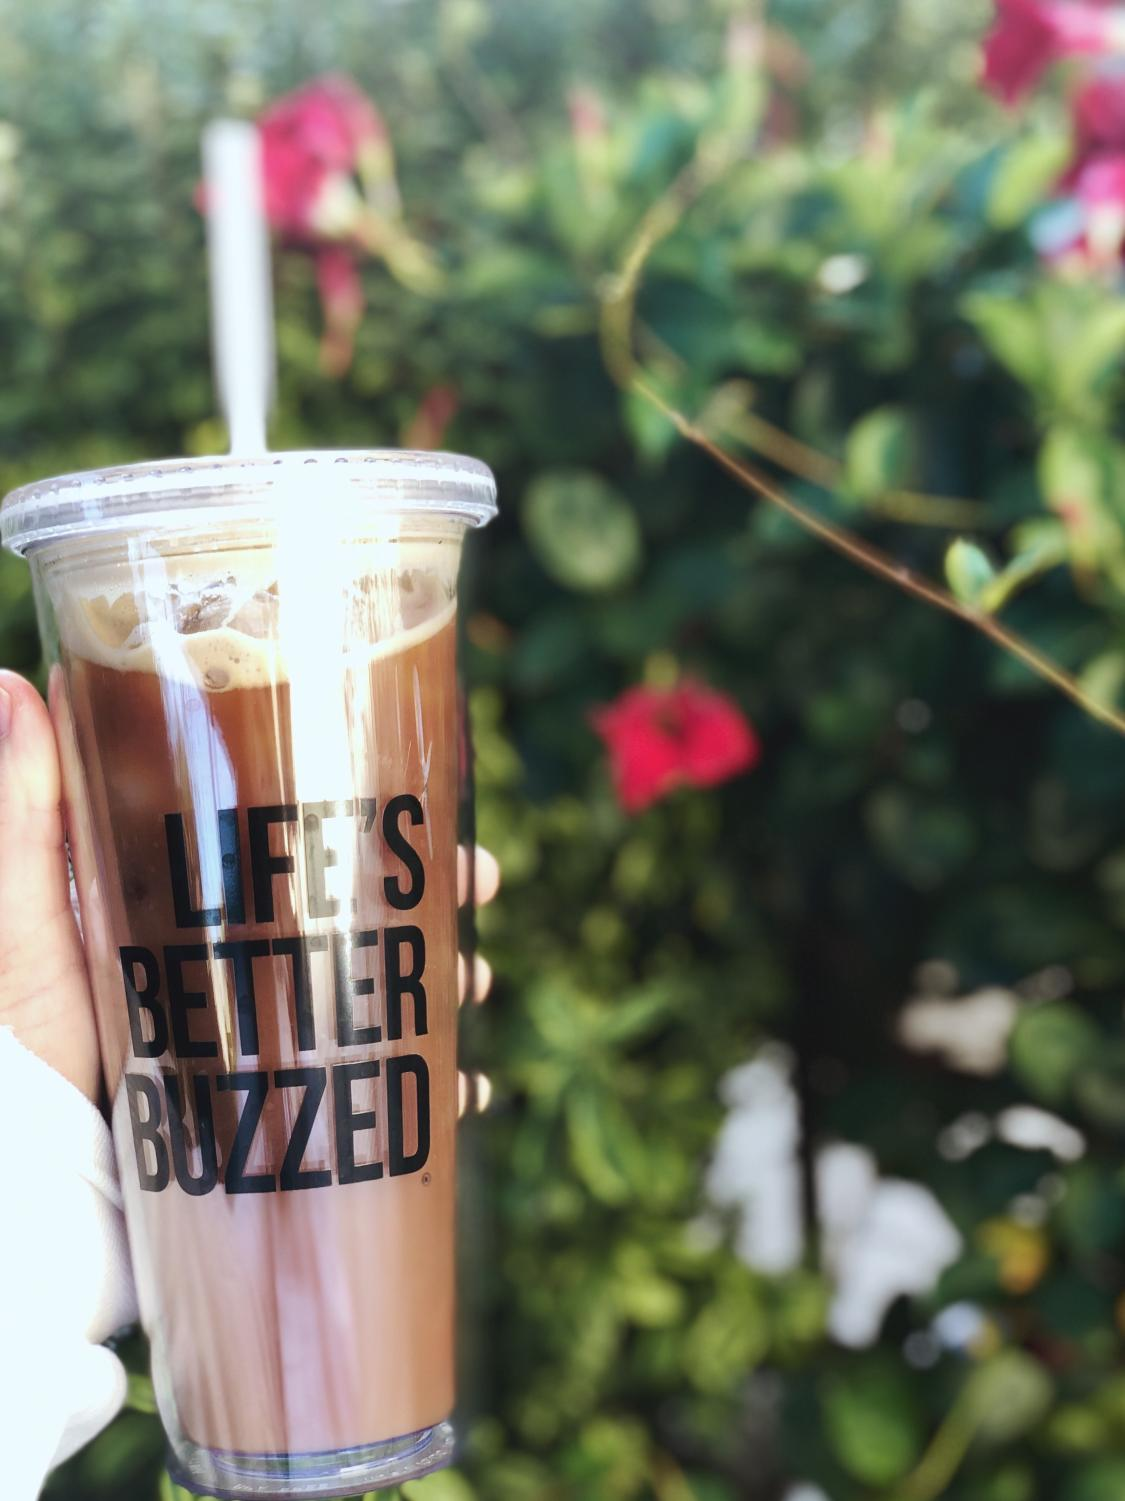 Better Buzz, known for its wide range of drinks and atmospheric, aesthetic interiors, is gearing up to arrive in La Jolla by the end of this August.